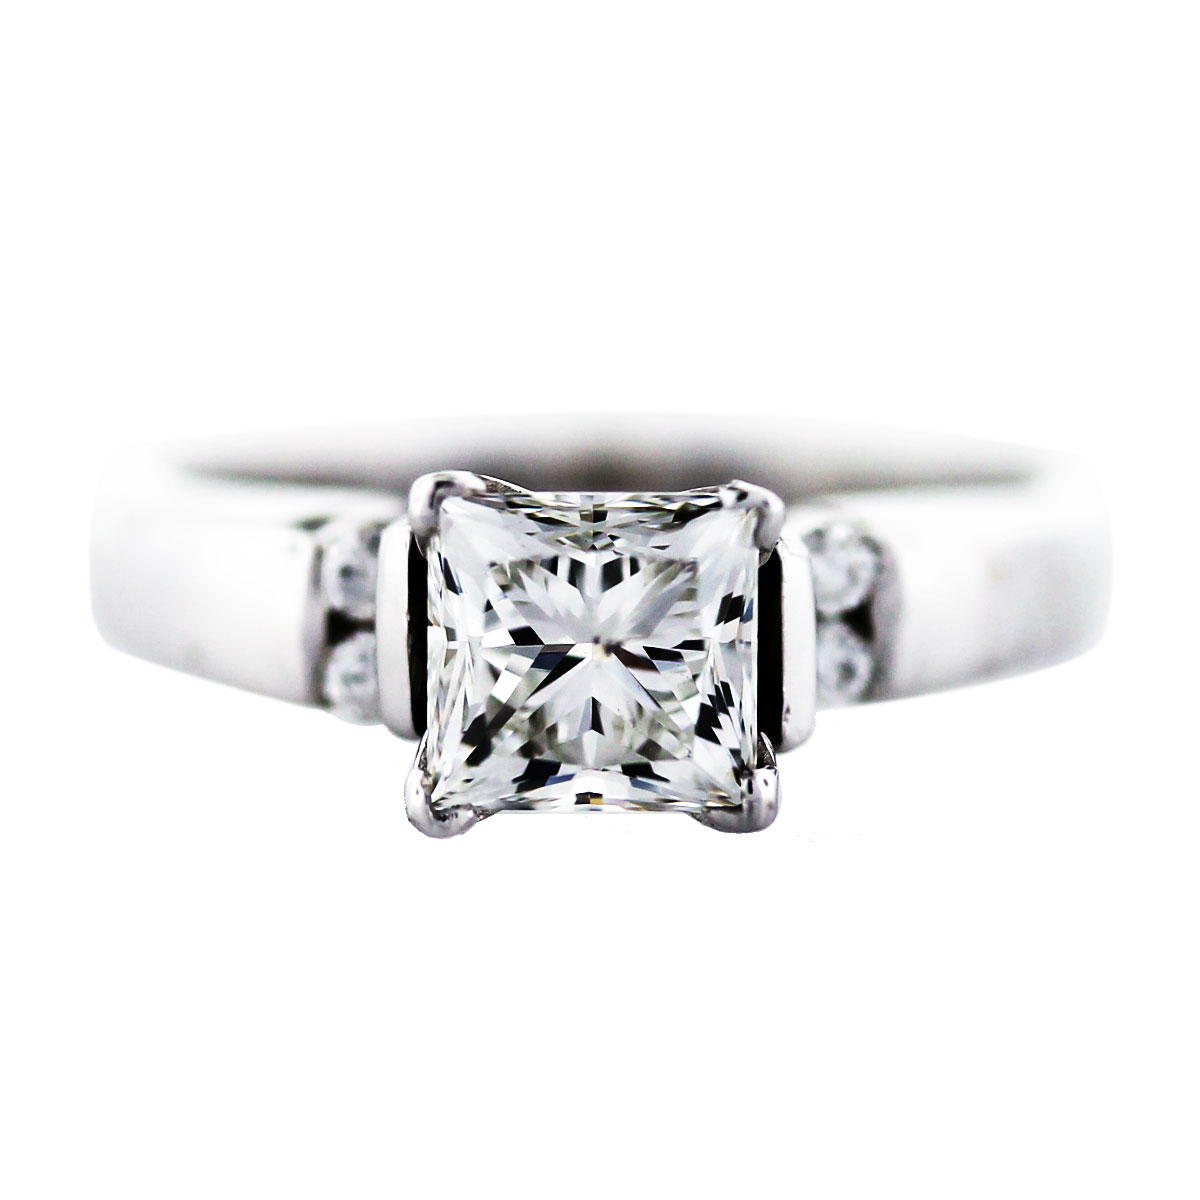 1 Carat Princess Cut Diamond Engagement Ring Boca Raton